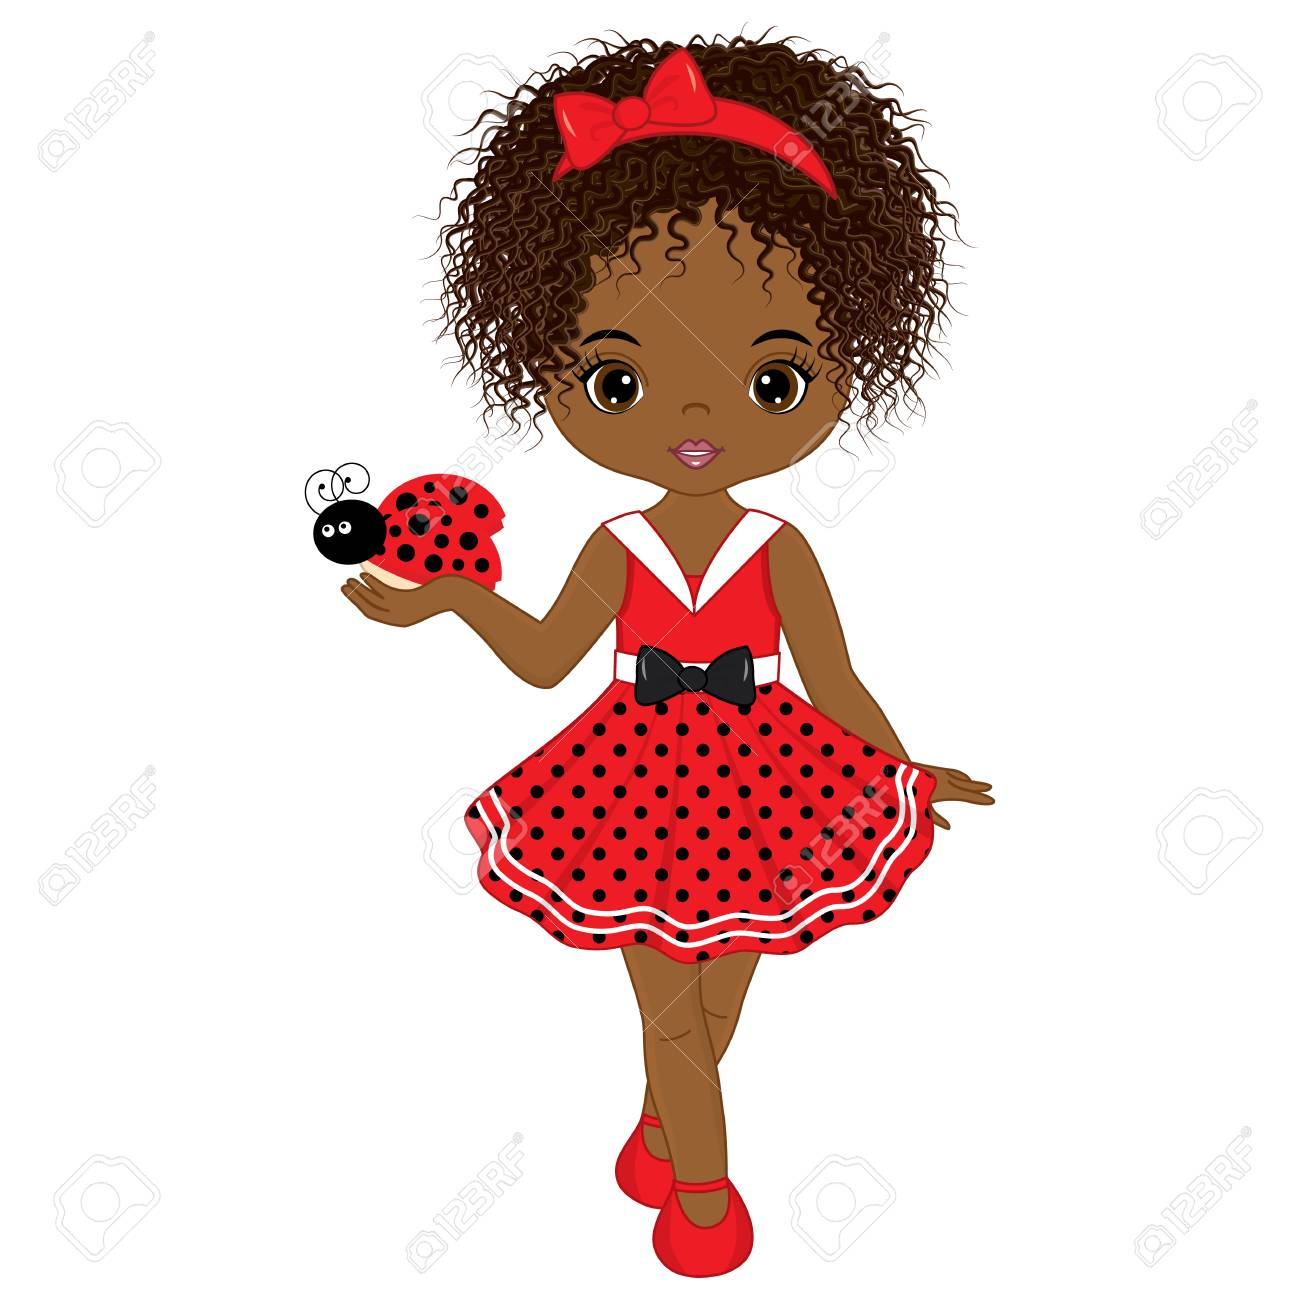 American girl clipart 5 » Clipart Station.